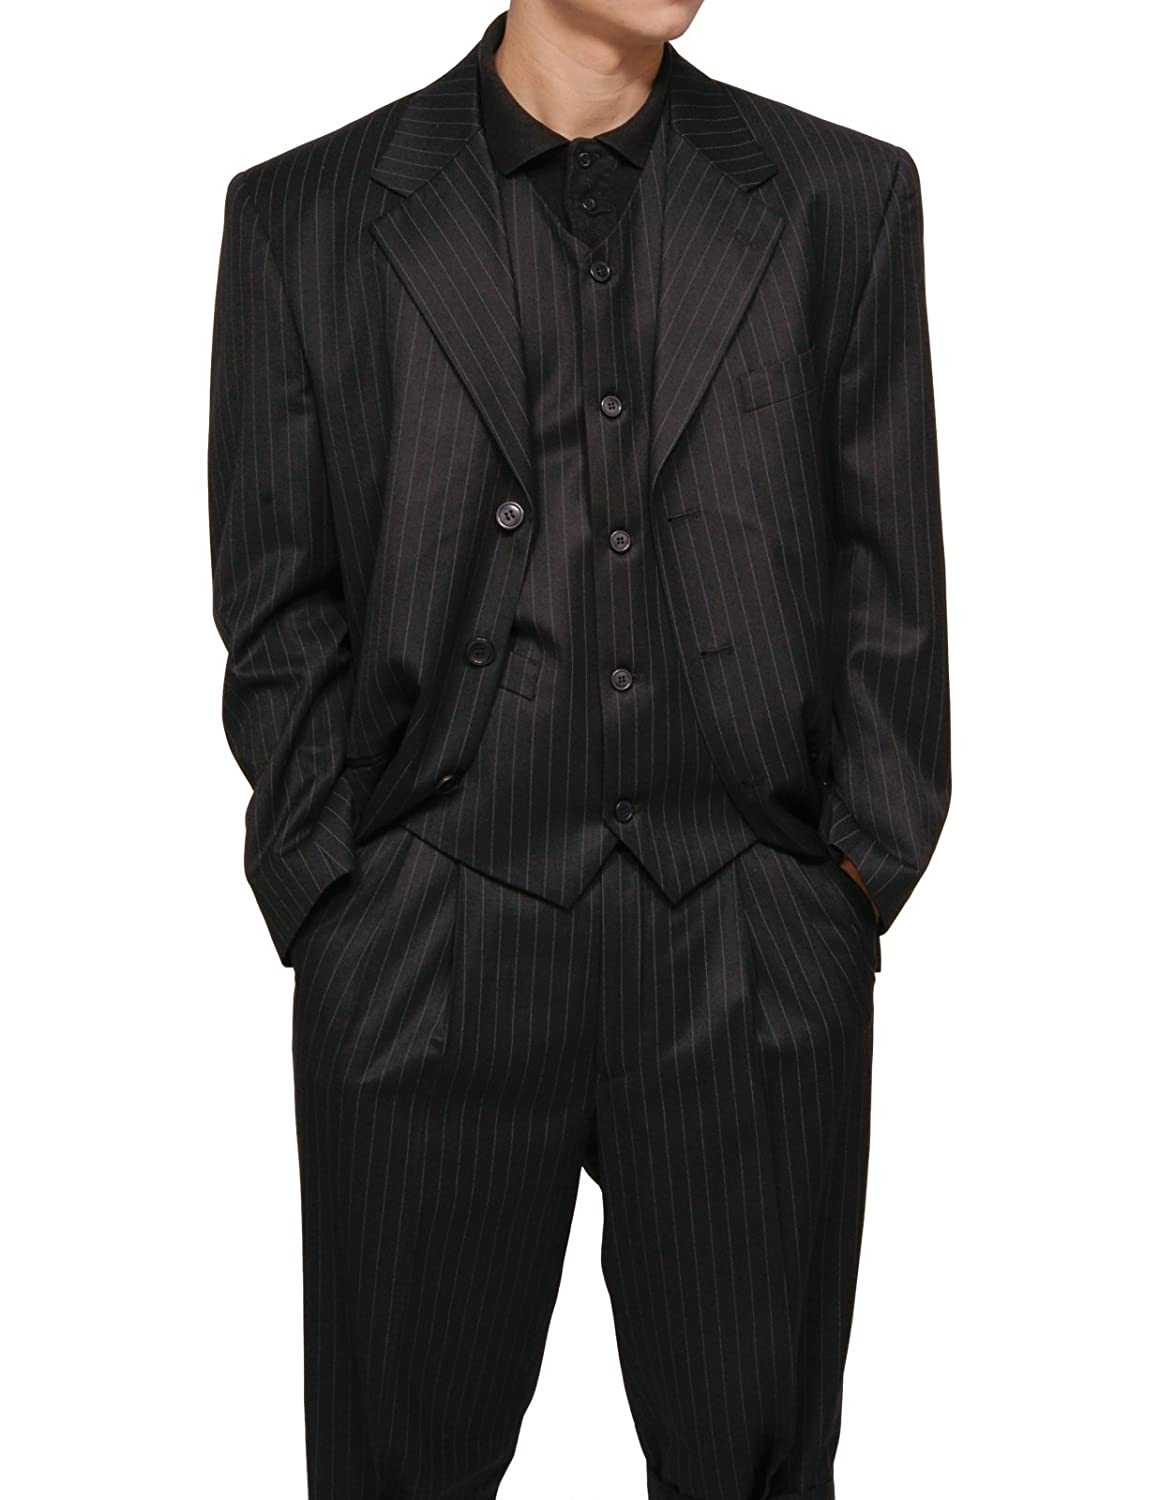 New Men's 3 Piece Black Gangster Pinstripe Dress Suit with ...